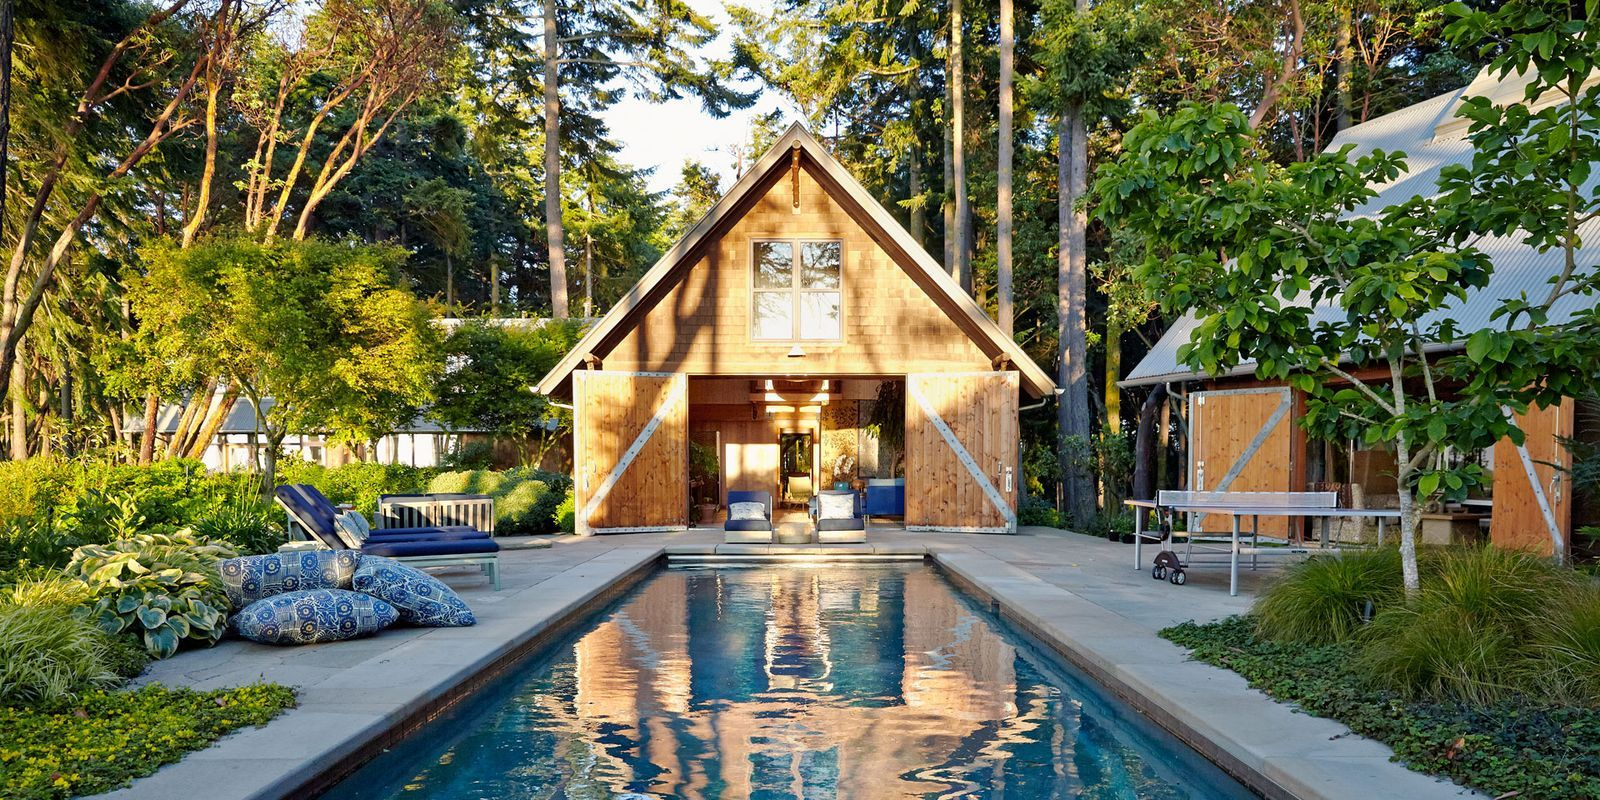 Swimming pool house pictures